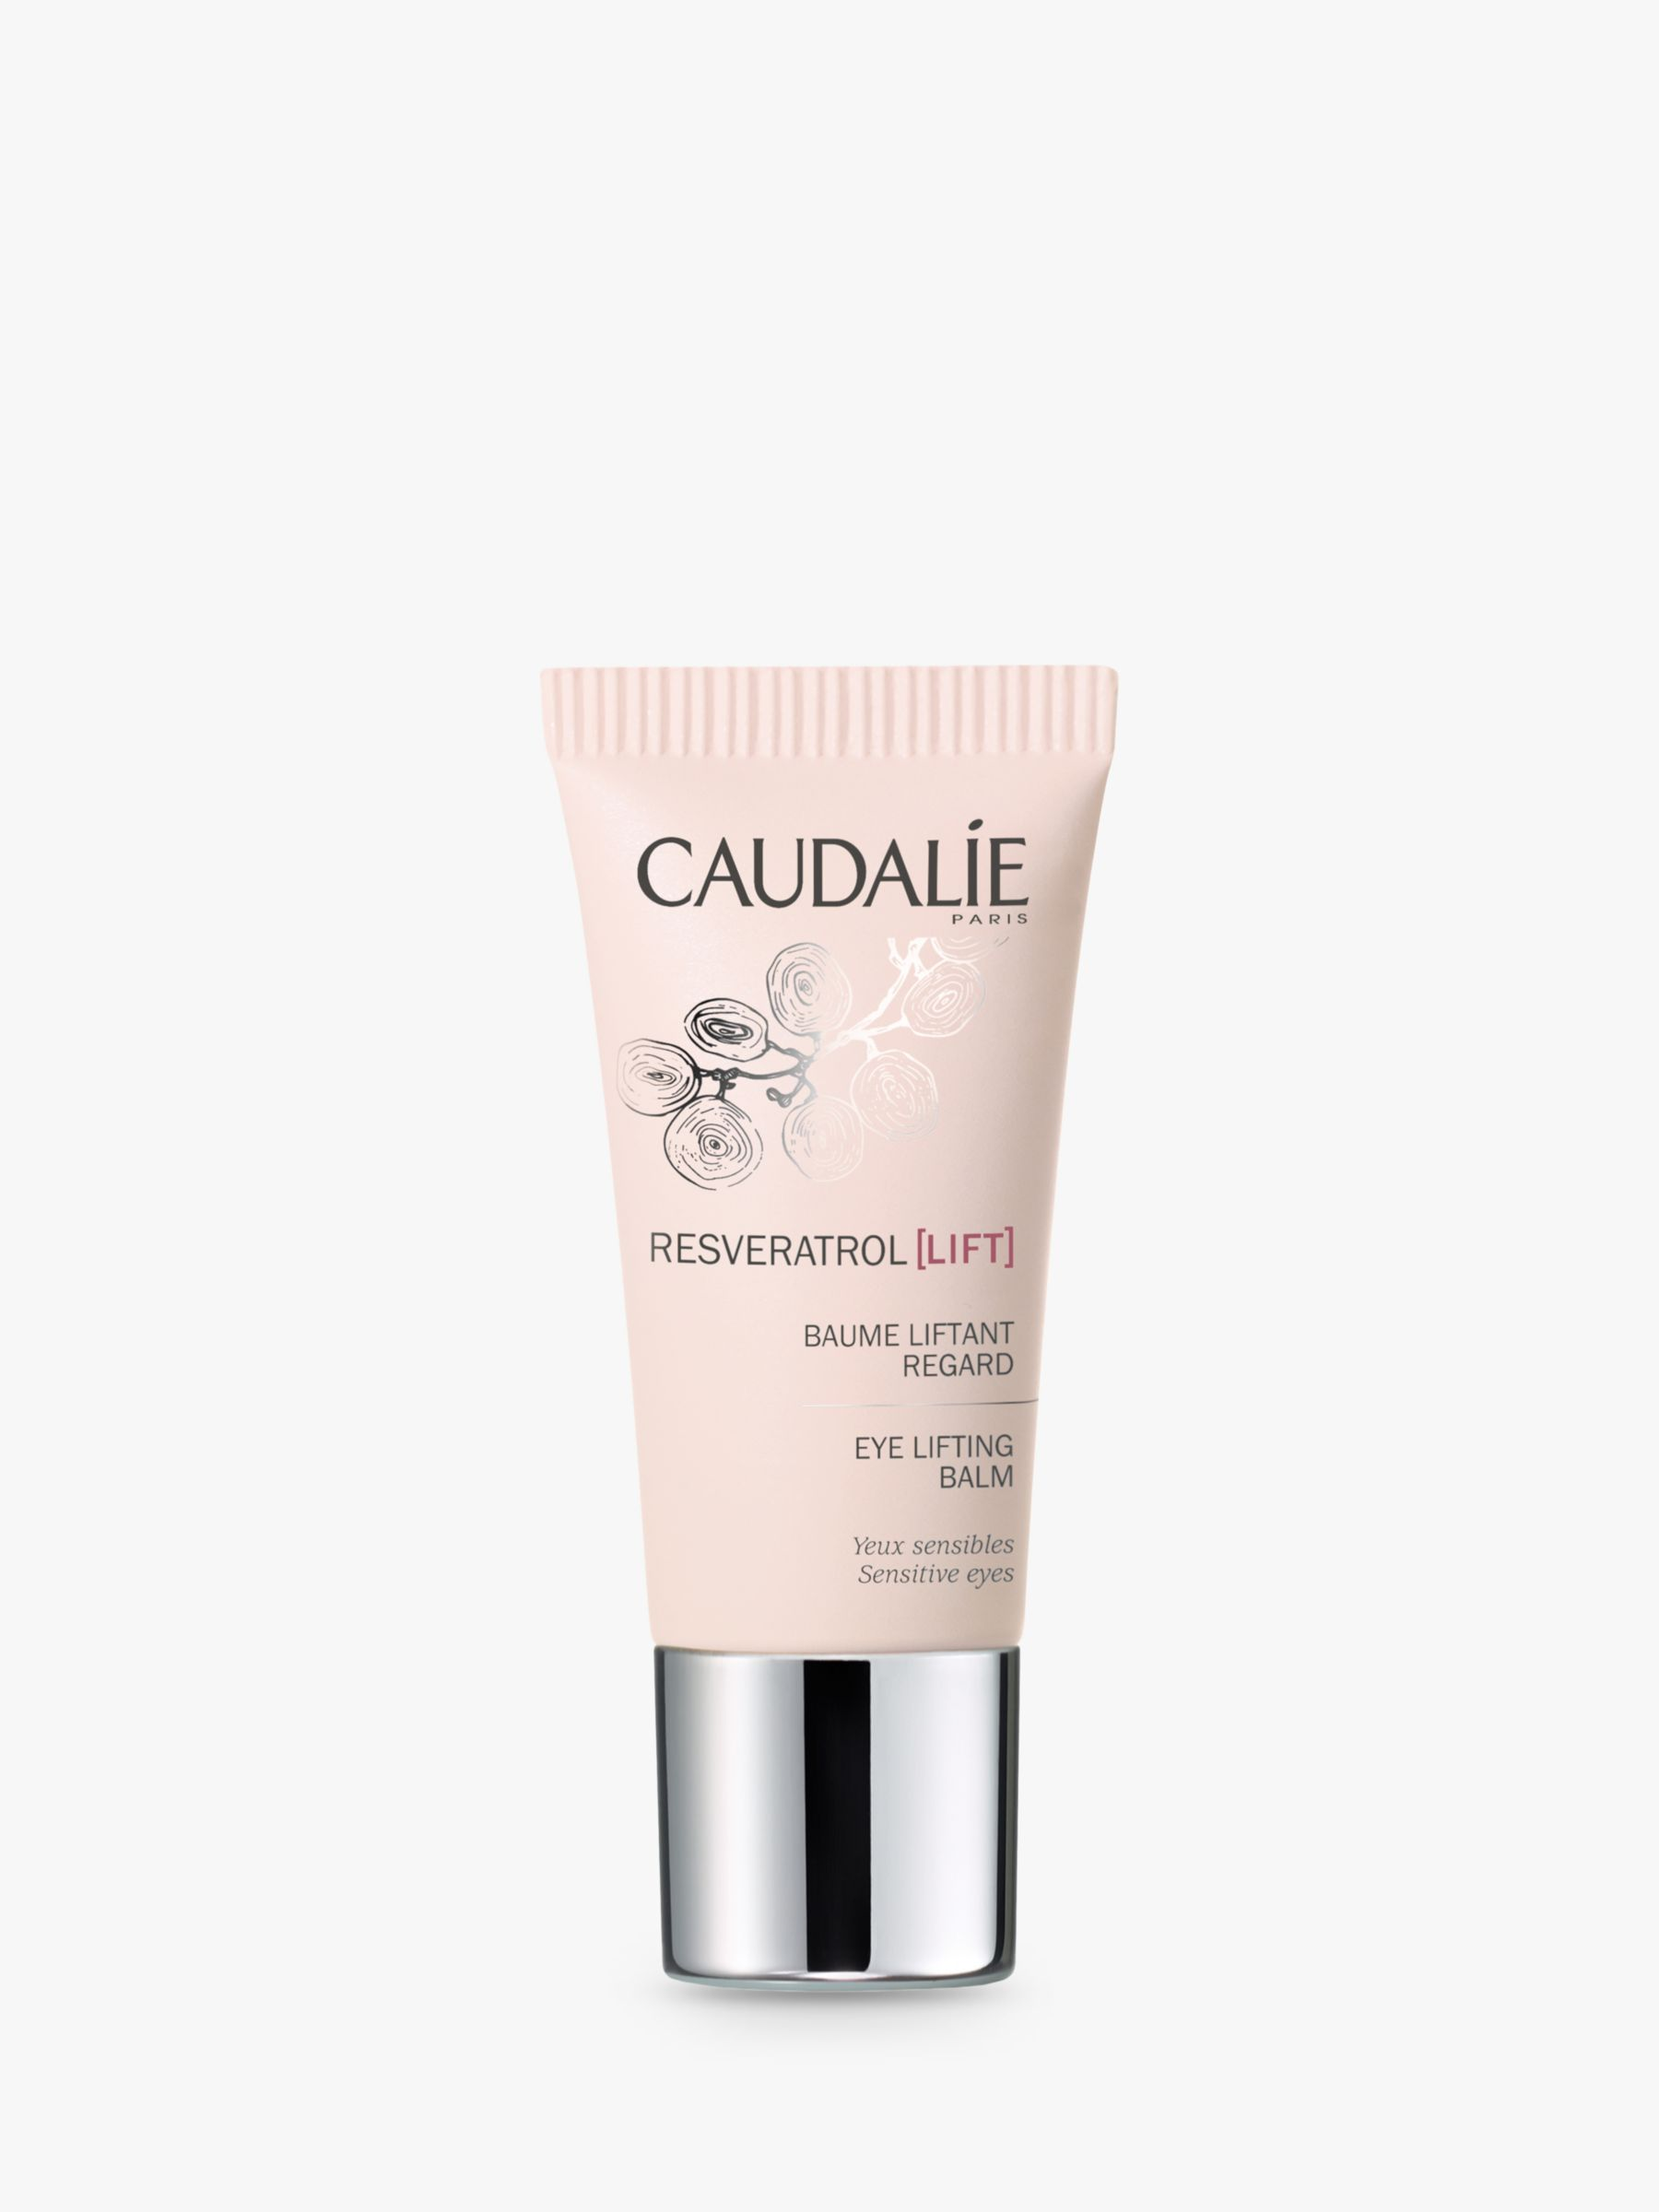 Caudalie Caudalie Resveratrol Eye Lifting Balm, 15ml